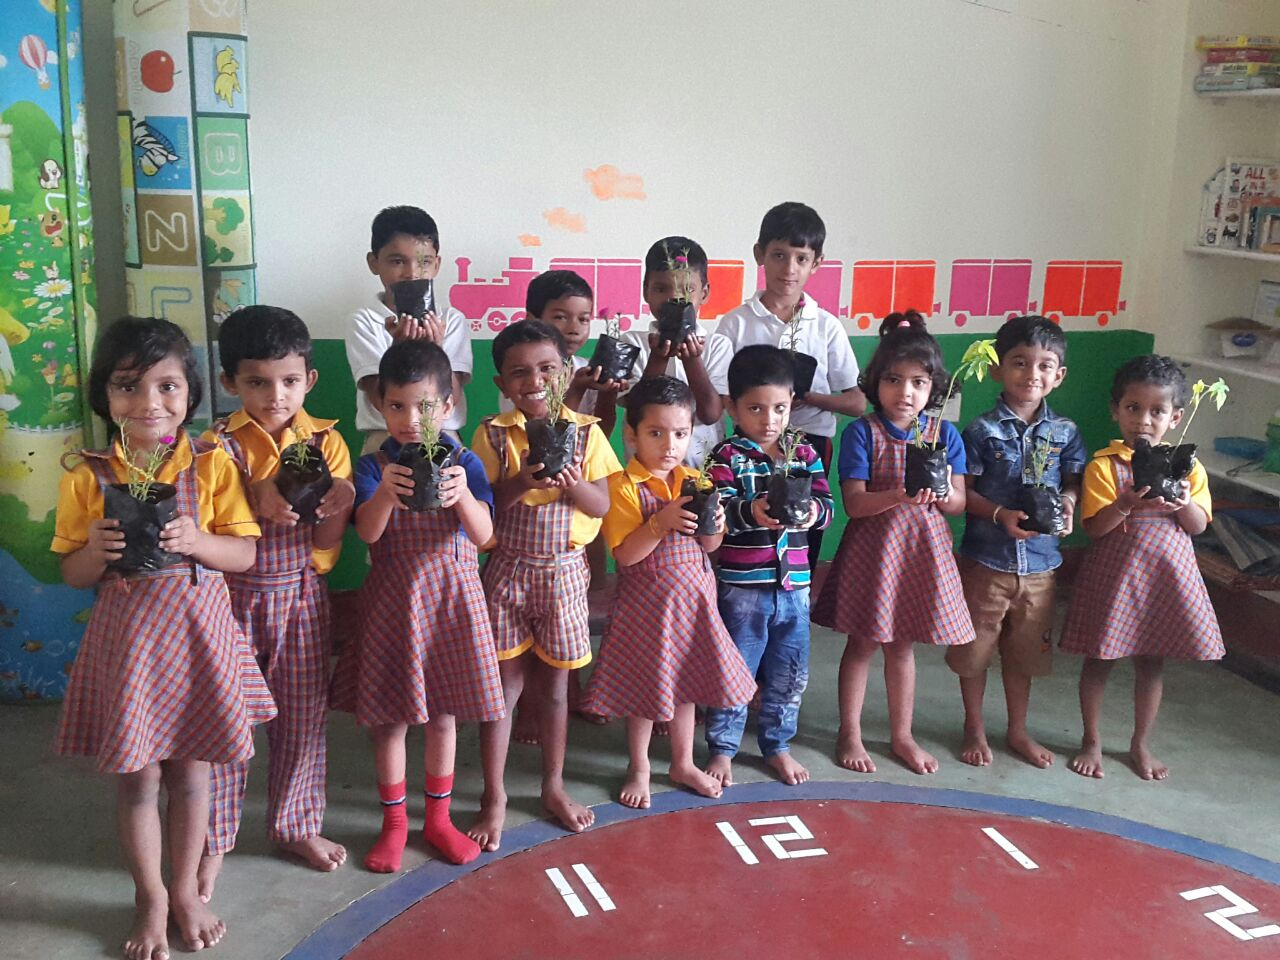 <p>Tiny Tots of Montessori Learning school,Near Tagore Hill,Ranchi, led by its Principal Dr Nikita Sinha discussed dependence of humans on trees and planted trees.</p>